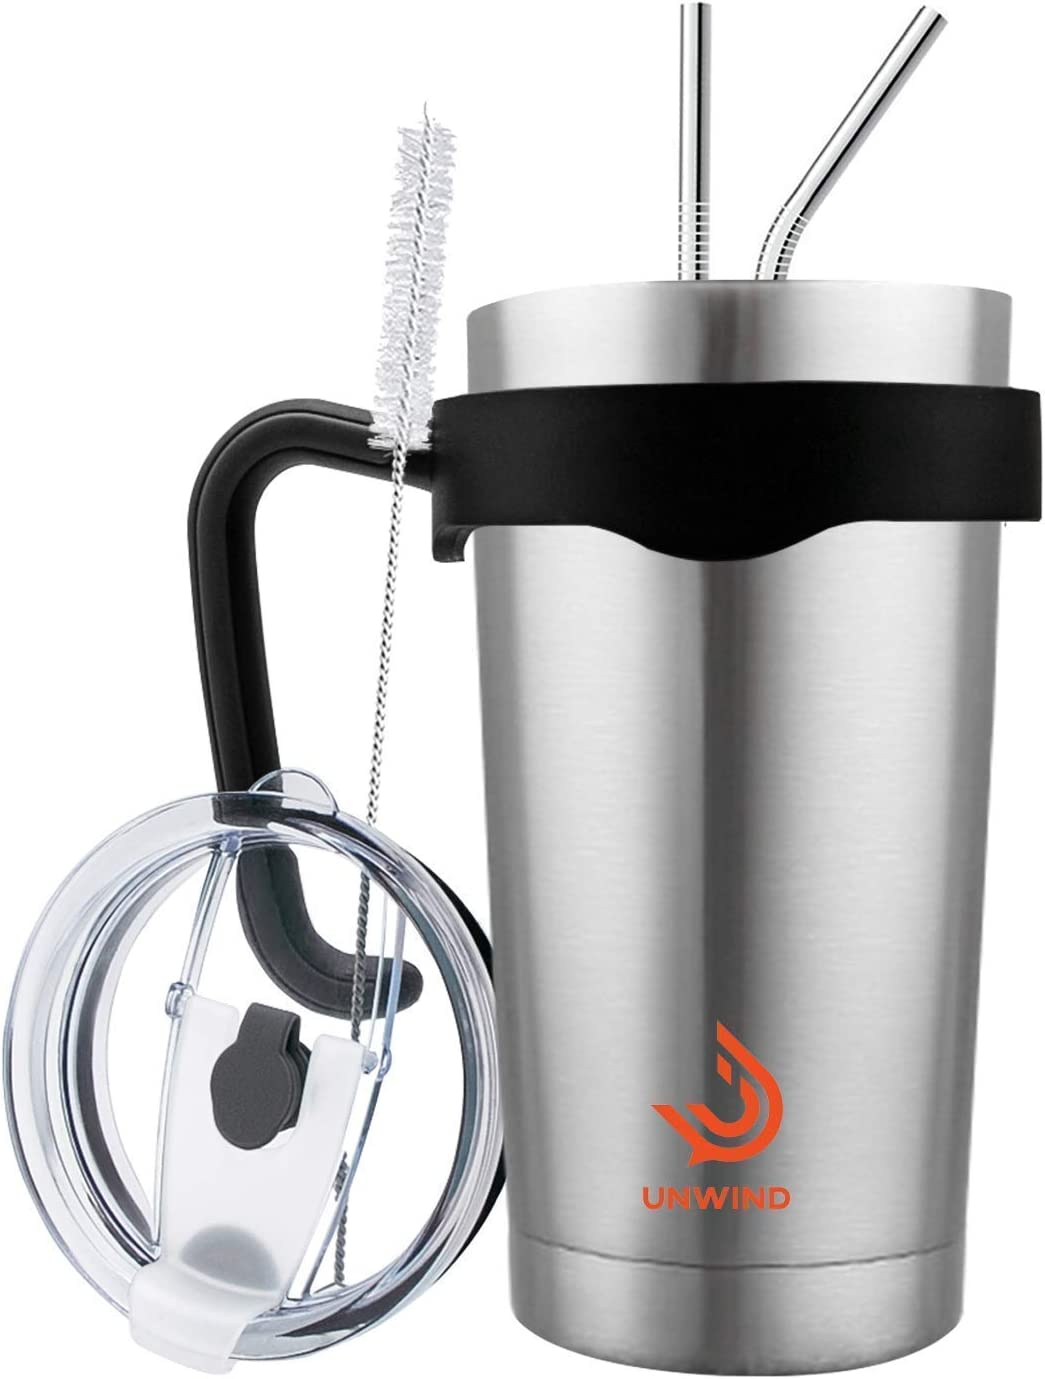 Unwind 20 oz Stainless Steel Tumbler Vacuum Insulated Coffee Cup Large Travel Mug Works Great for Ice Drinks and Hot Beverage - Silver